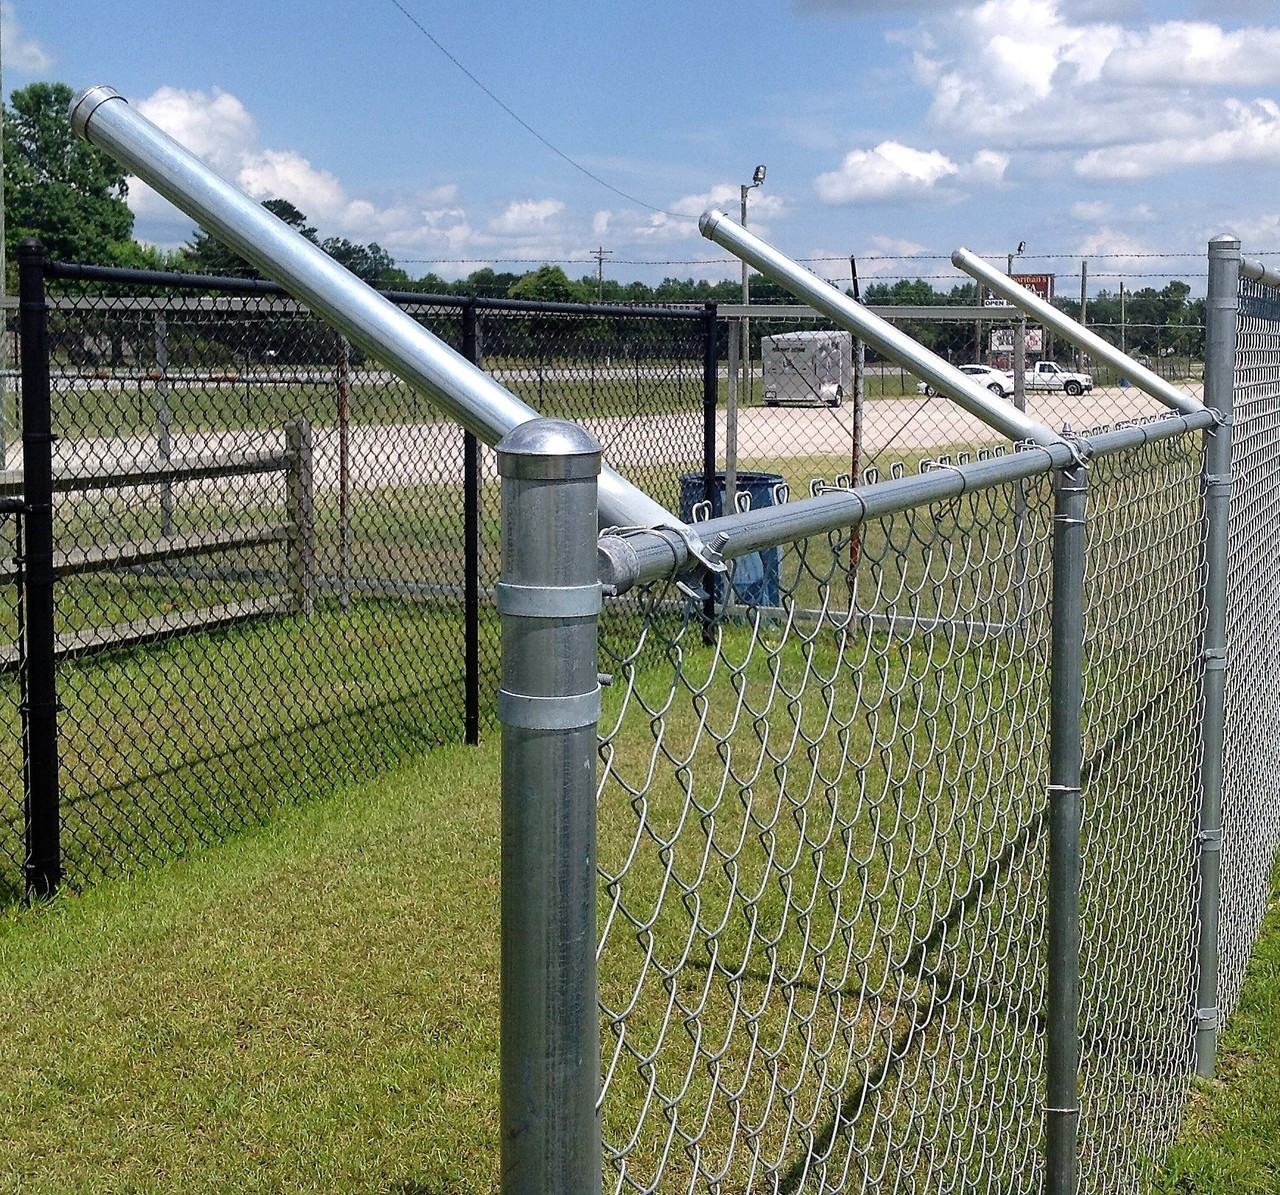 Extend-An-Arm Barbed Wire / Barbwire Arm Extensions for Chain Link ...